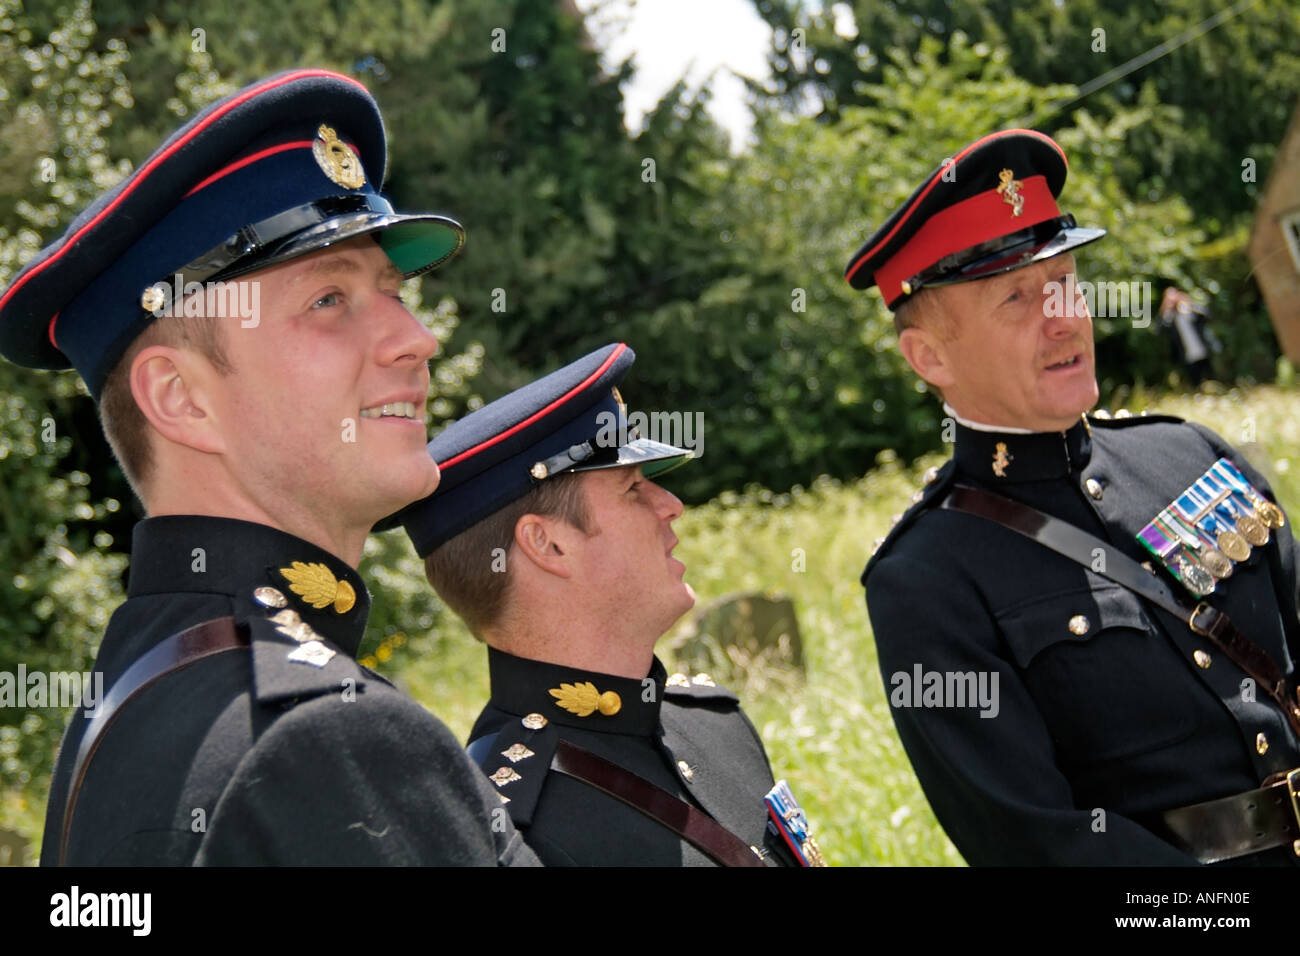 Army officers dress uniform - Stock Image